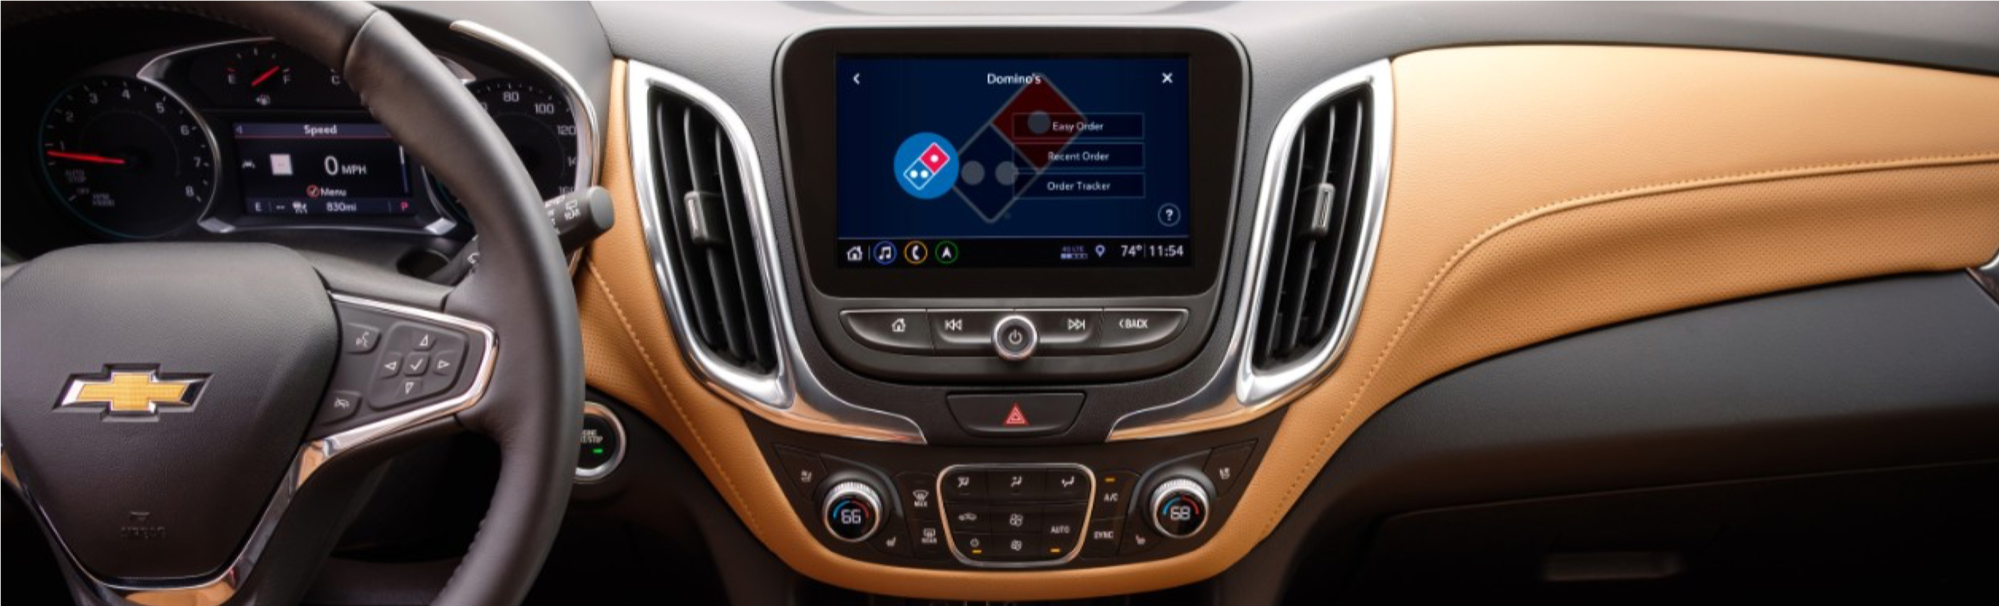 Chevrolet and Dominos